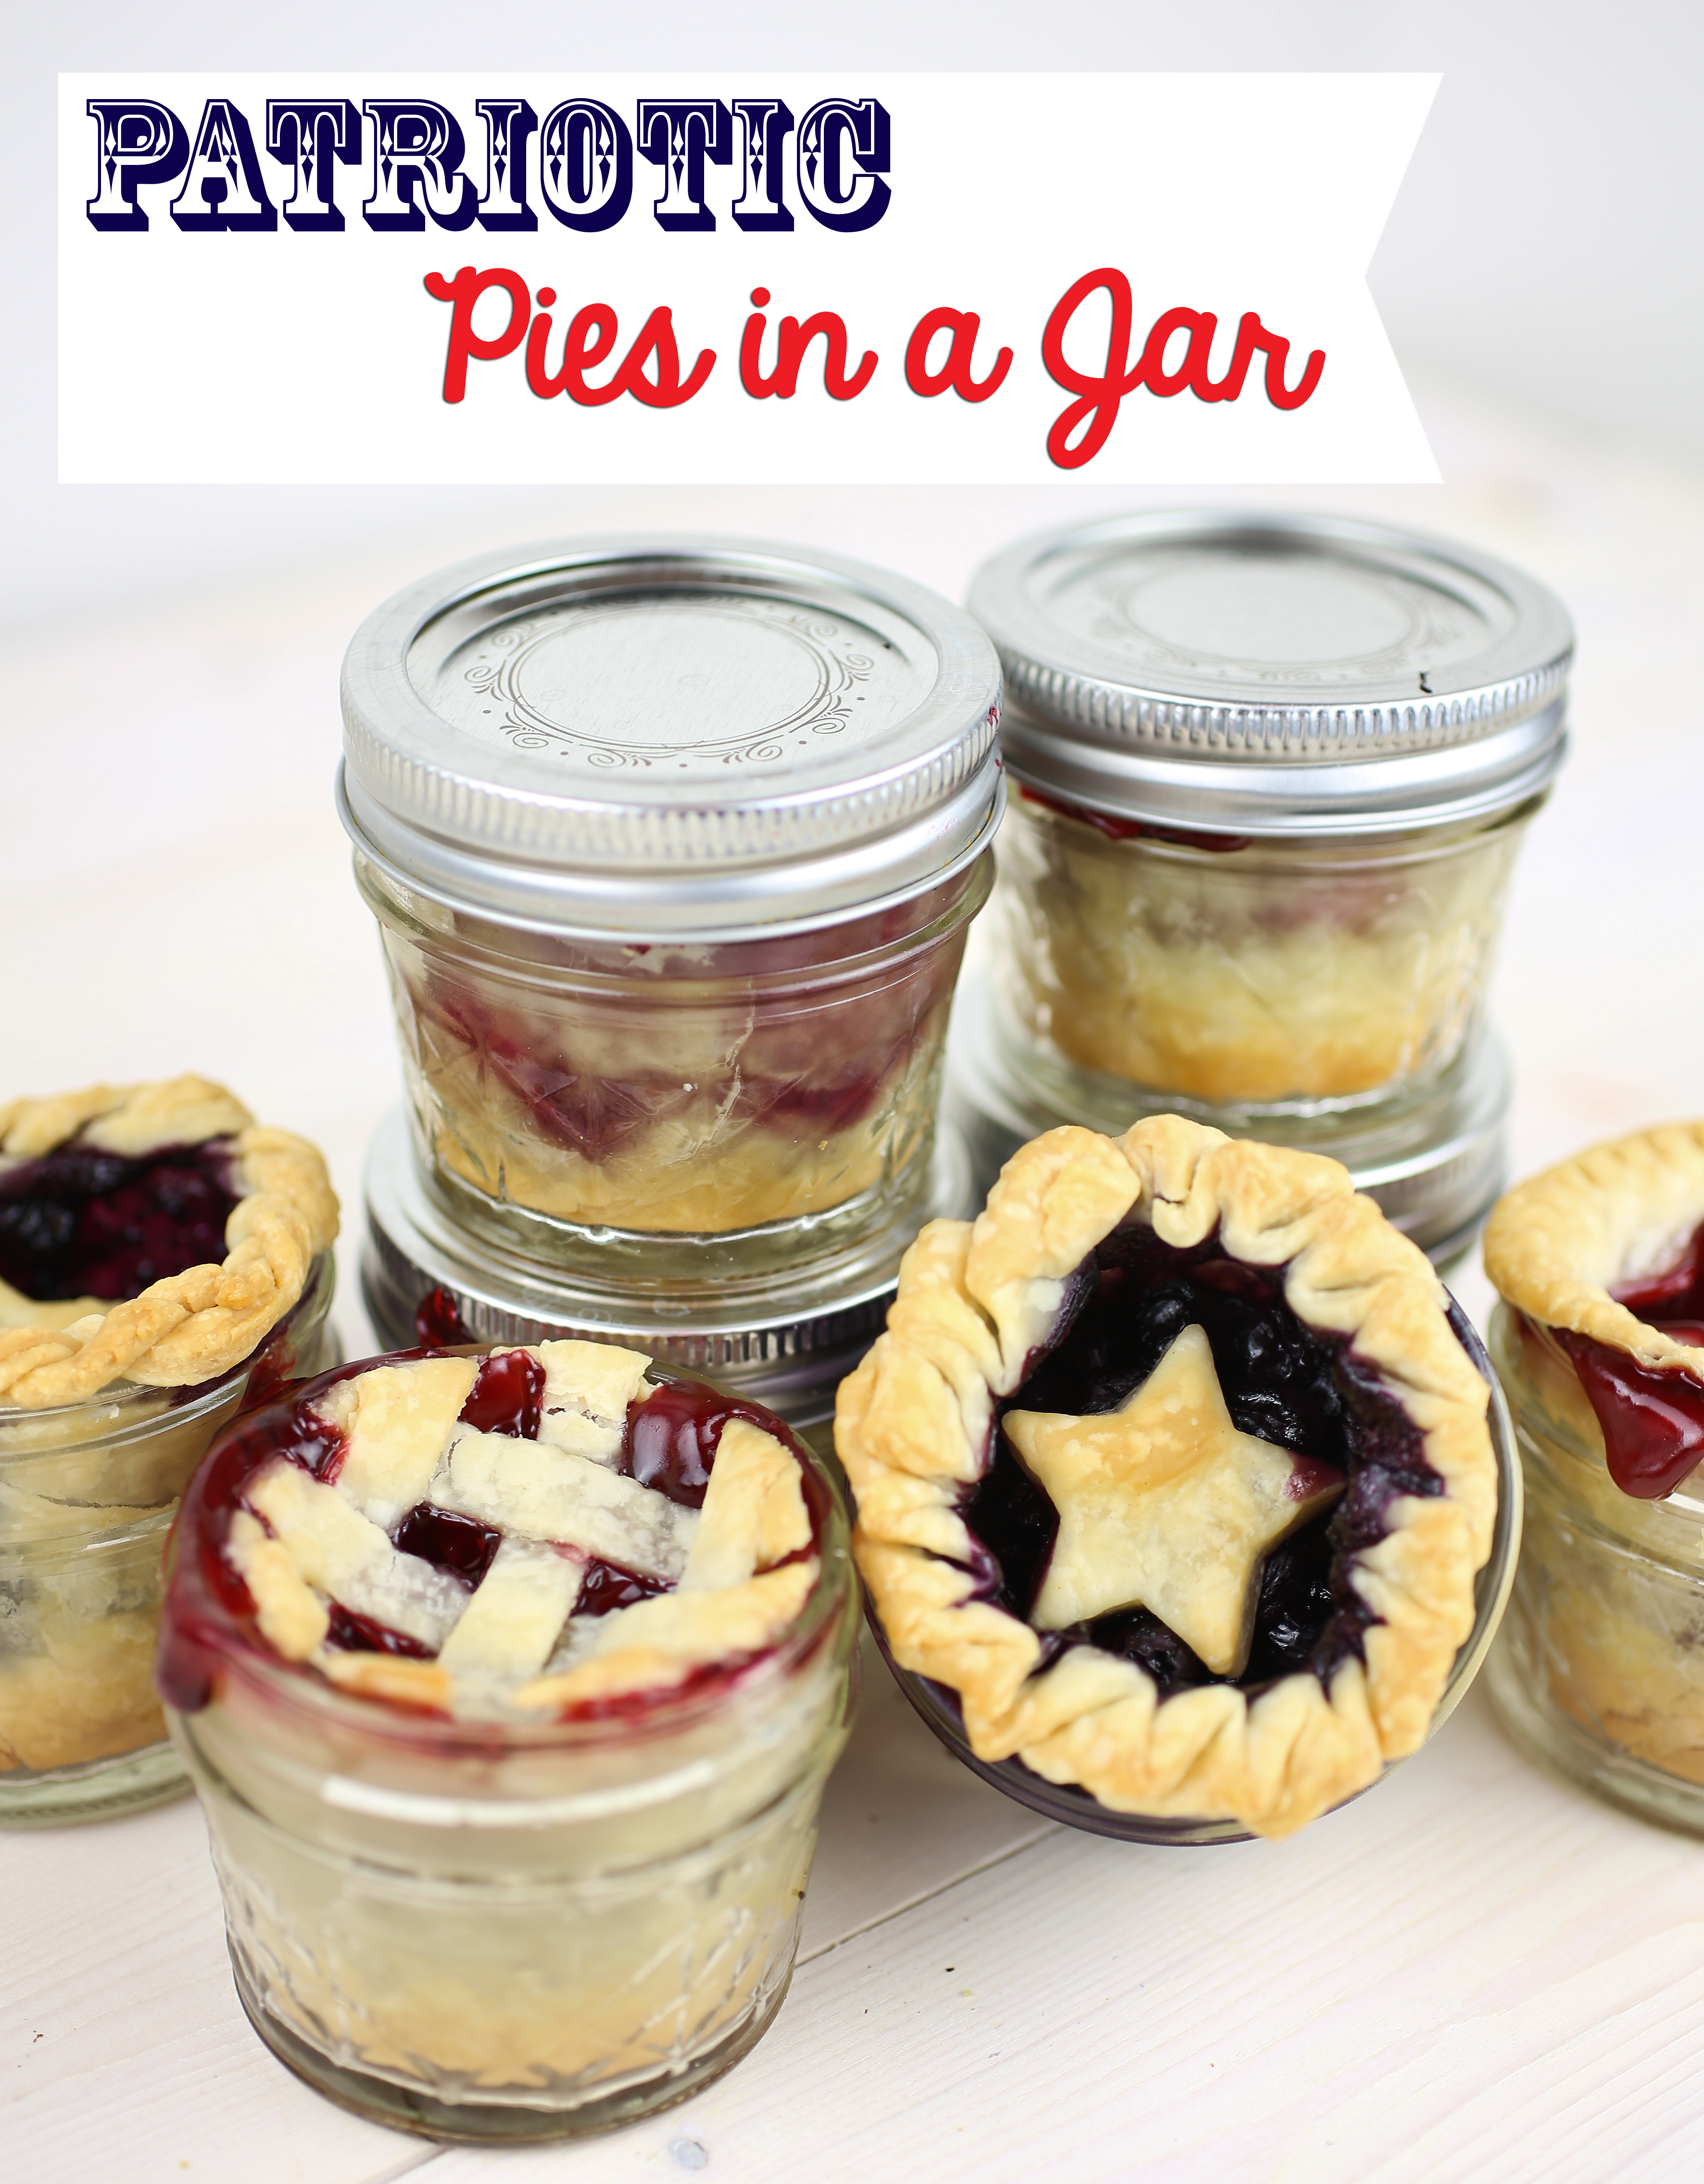 Patriotic Pies in a Jar